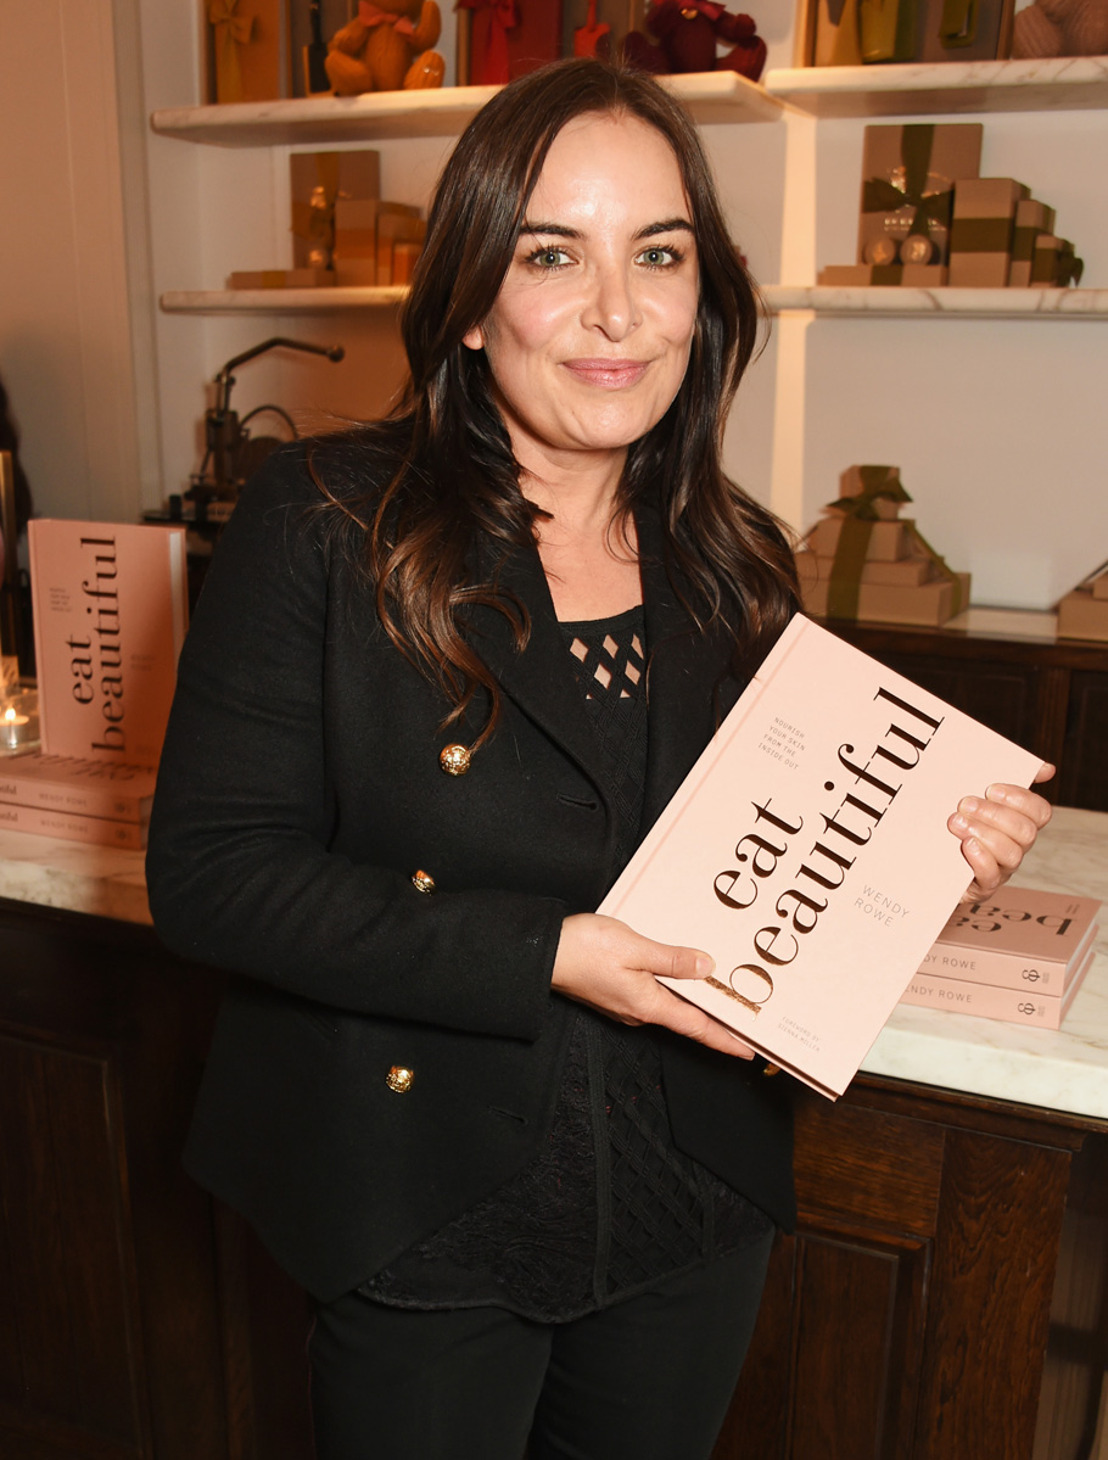 "BURBERRY CELEBRA EL LANZAMIENTO DEL LIBRO DE WENDY ROWE "" EAT BEAUTIFUL""."